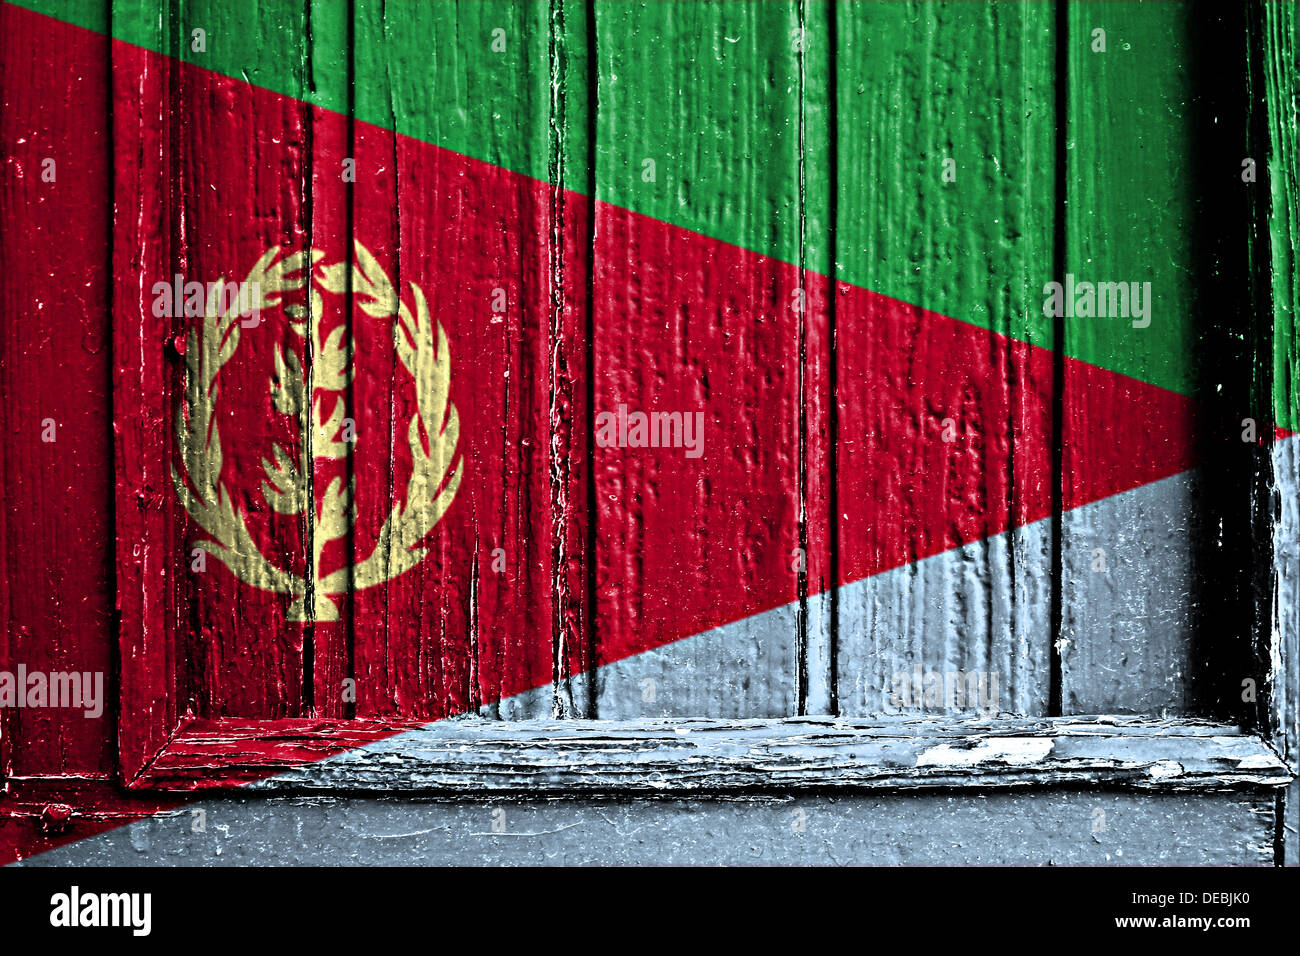 flag of Eritrea painted on a wooden frame - Stock Image